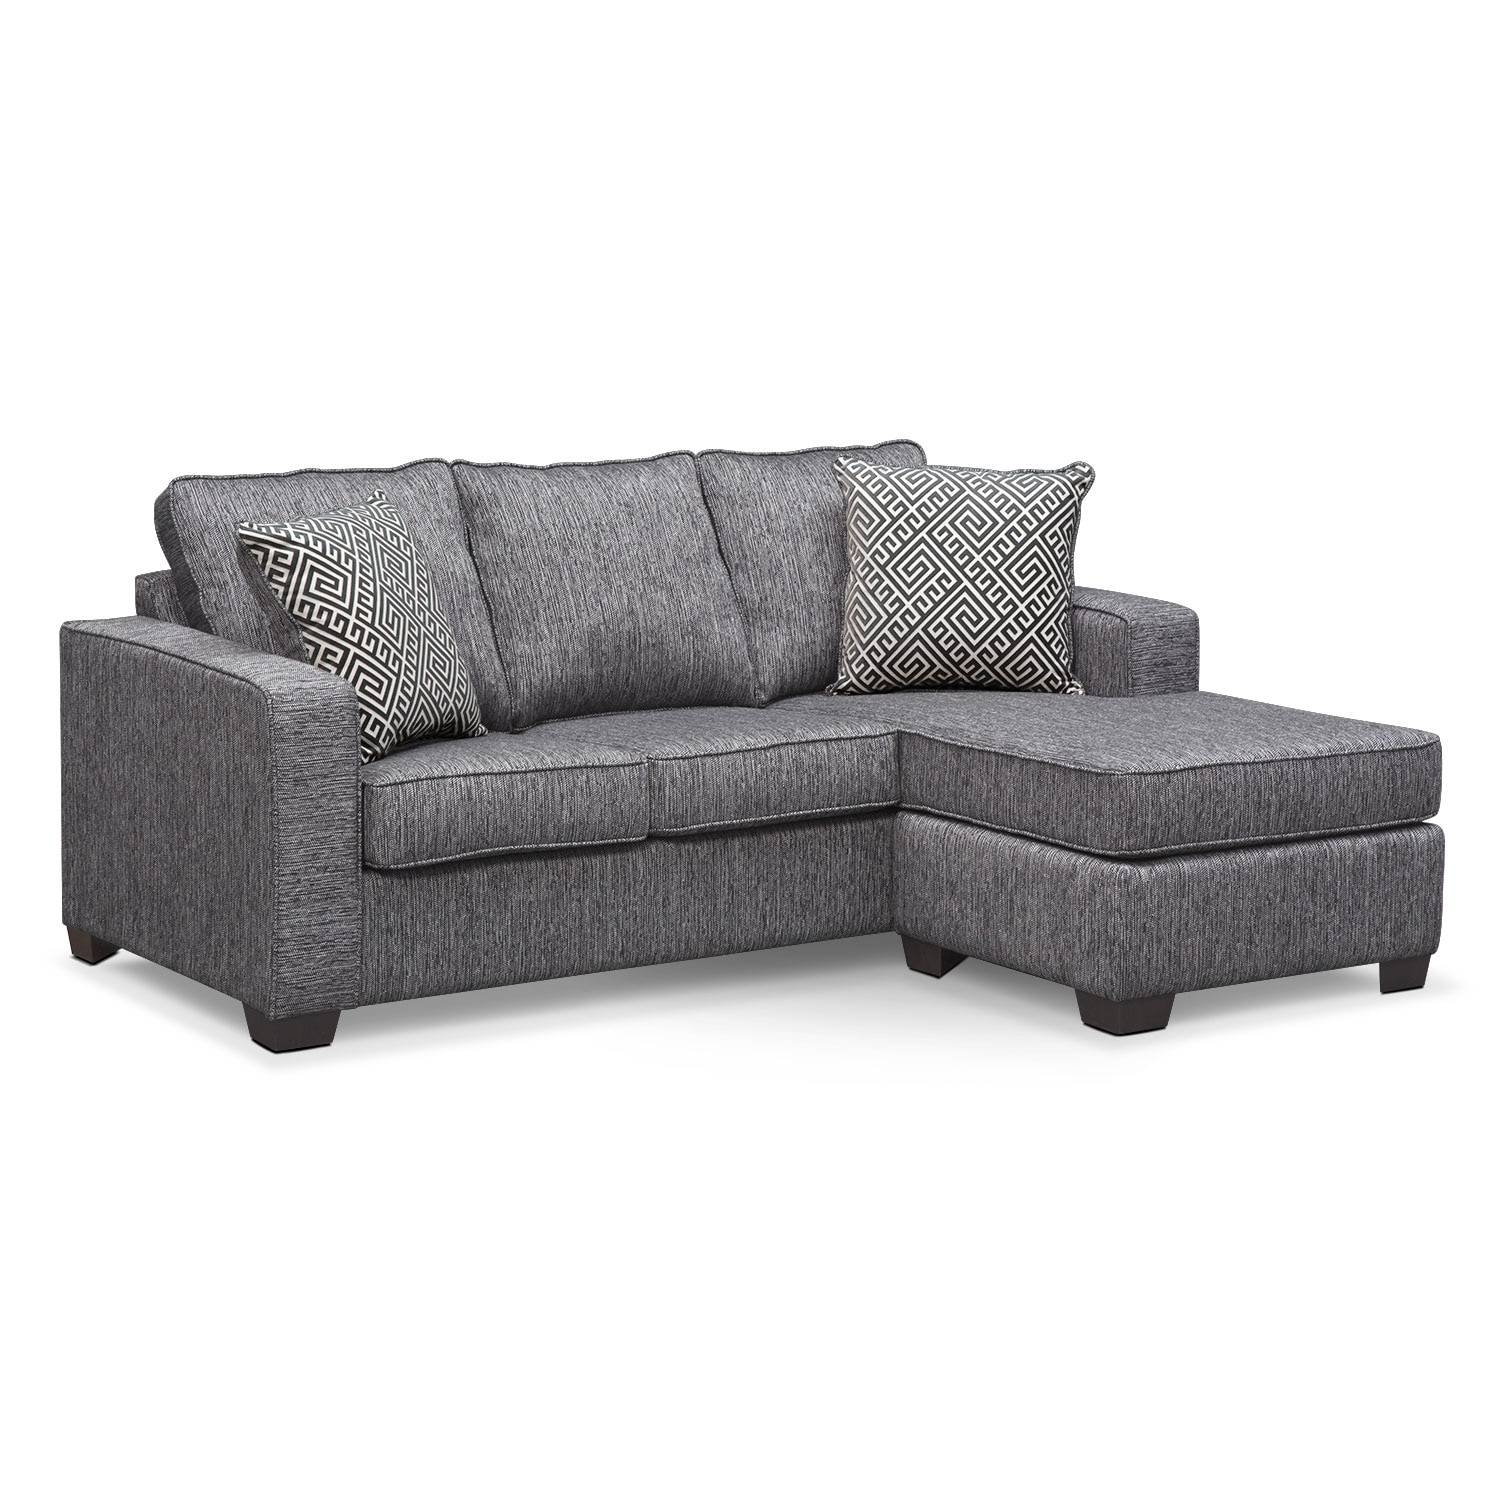 Sleeper Sofas | Value City Furniture | Value City Furniture Pertaining To Sofa Sleepers Queen Size (View 16 of 30)